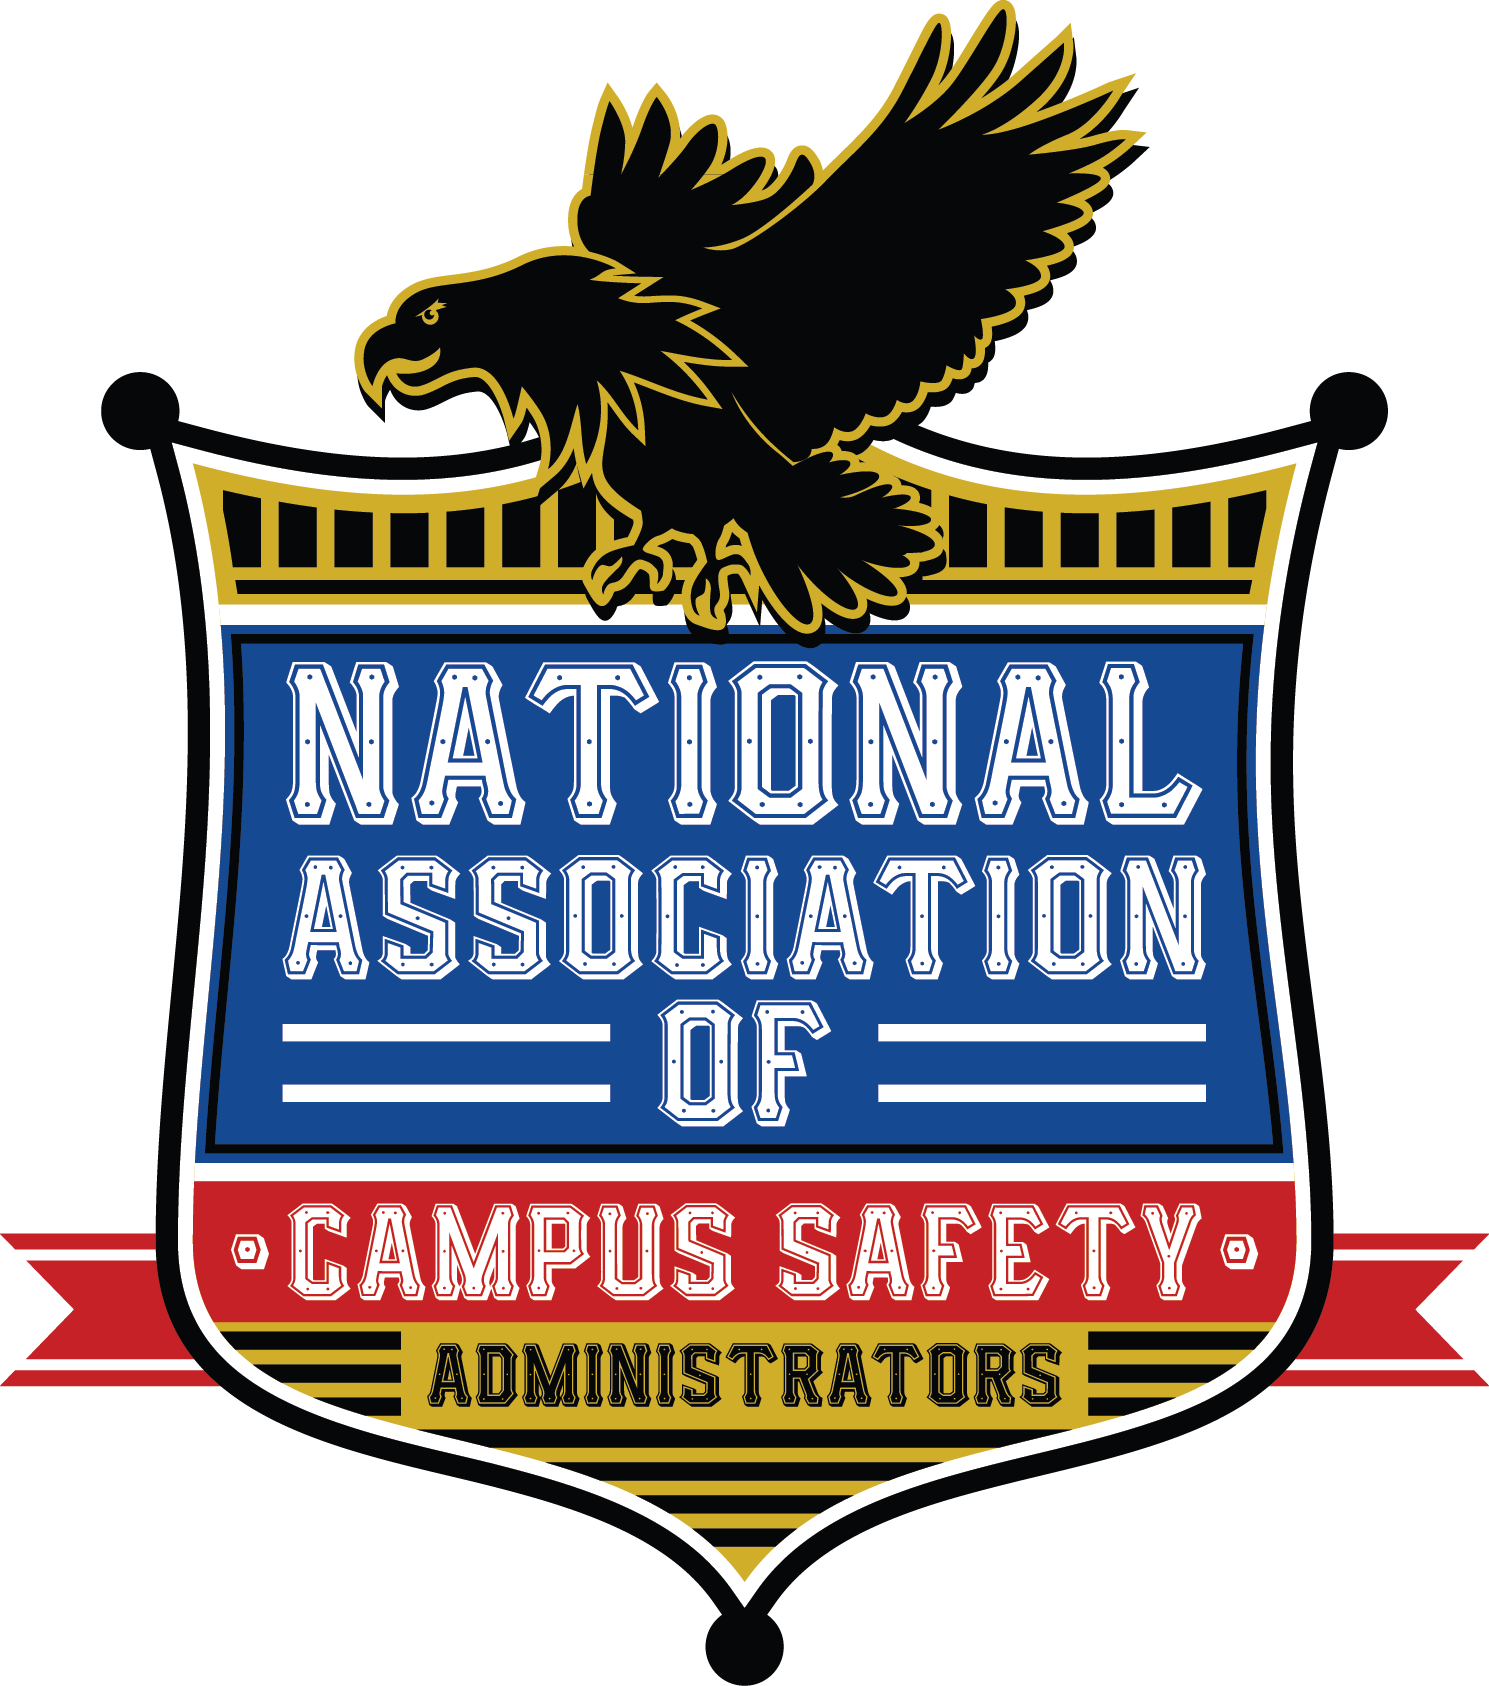 National Association of Campus Safety Administrators